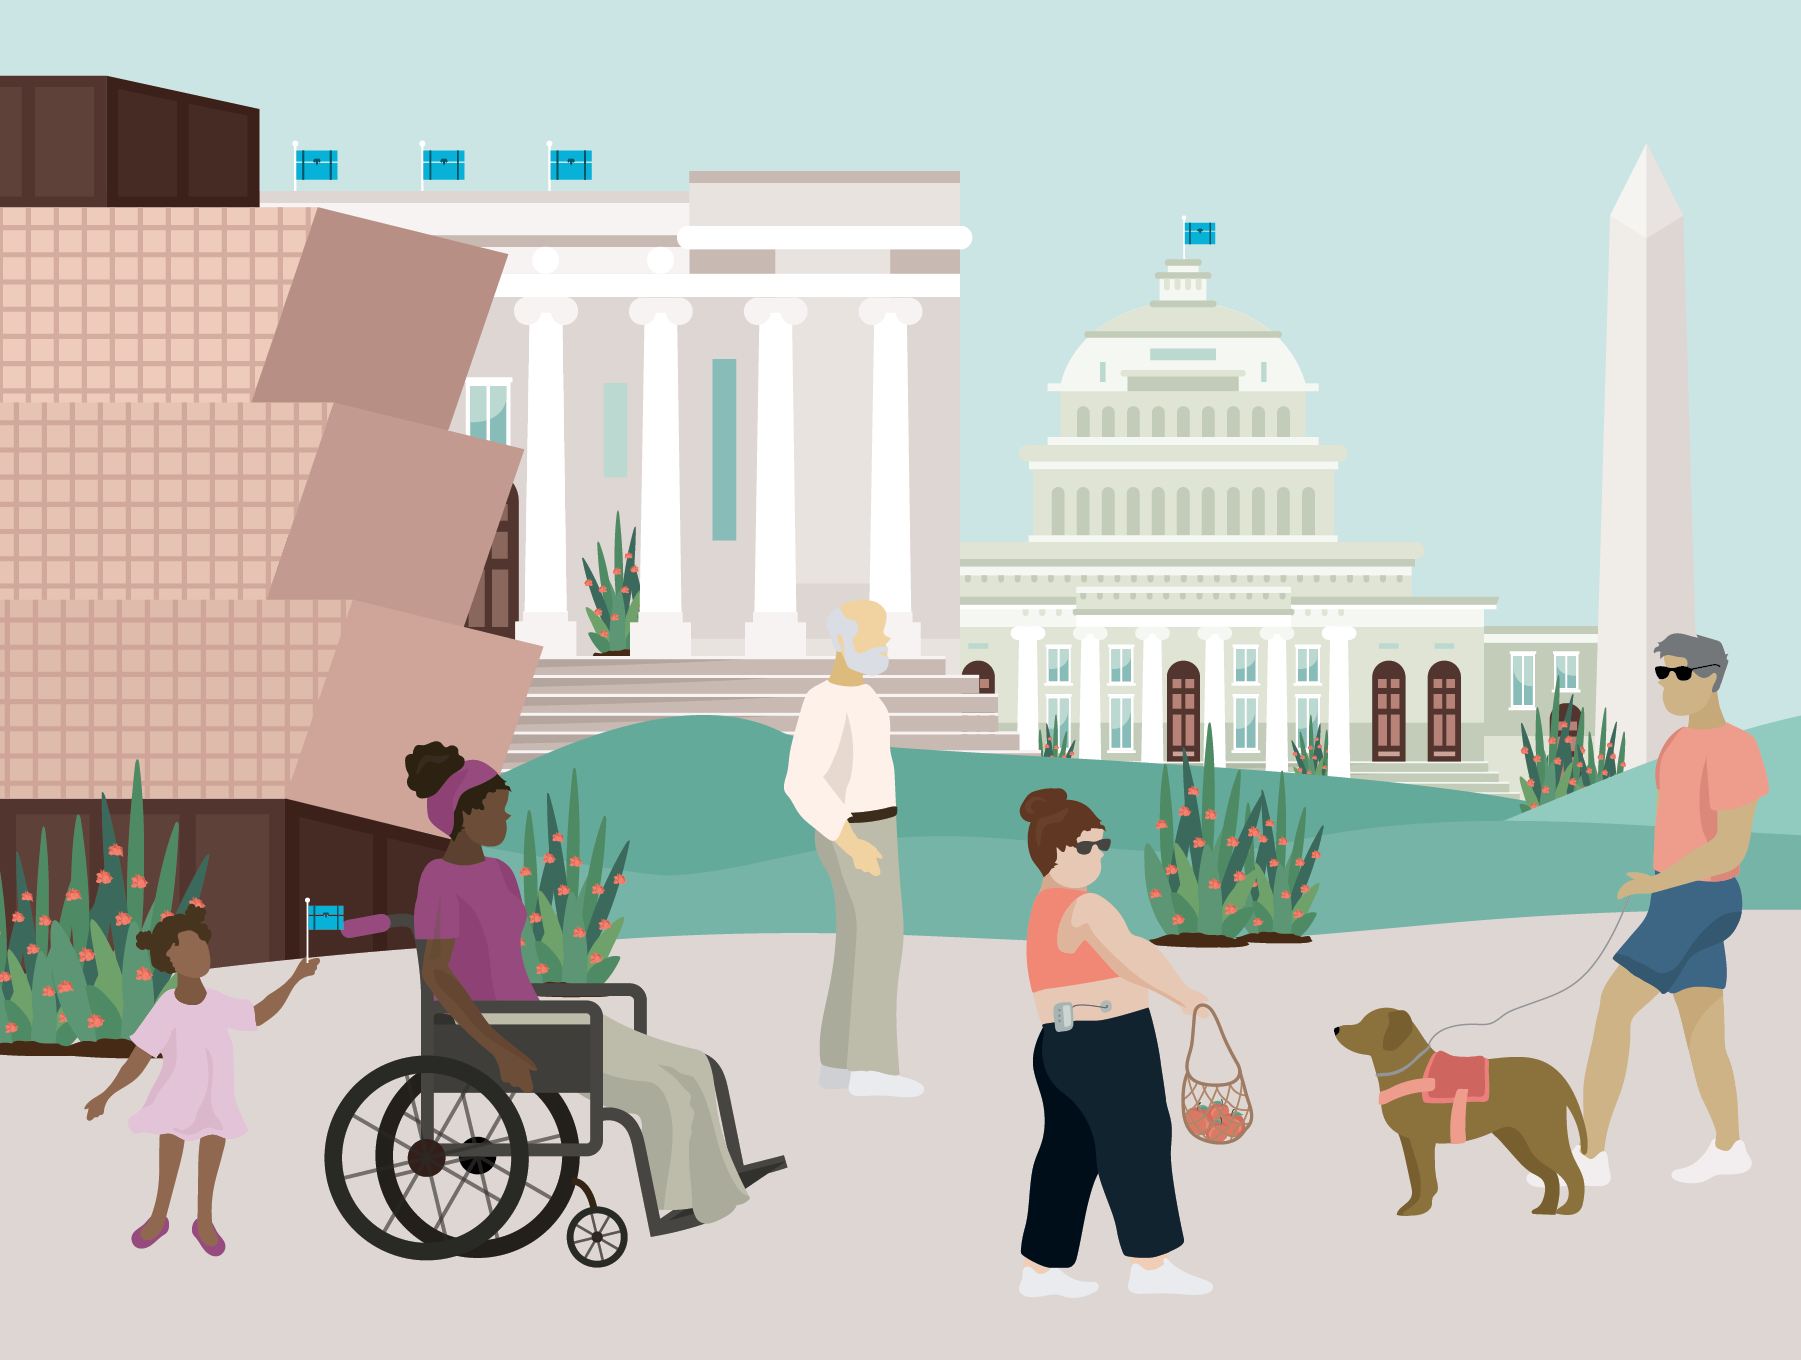 Several people with various disabilities in front of D.C. monuments including the African American History Museum, Lincoln Memorial, Capitol Building, and Washington Monument. Illustration.